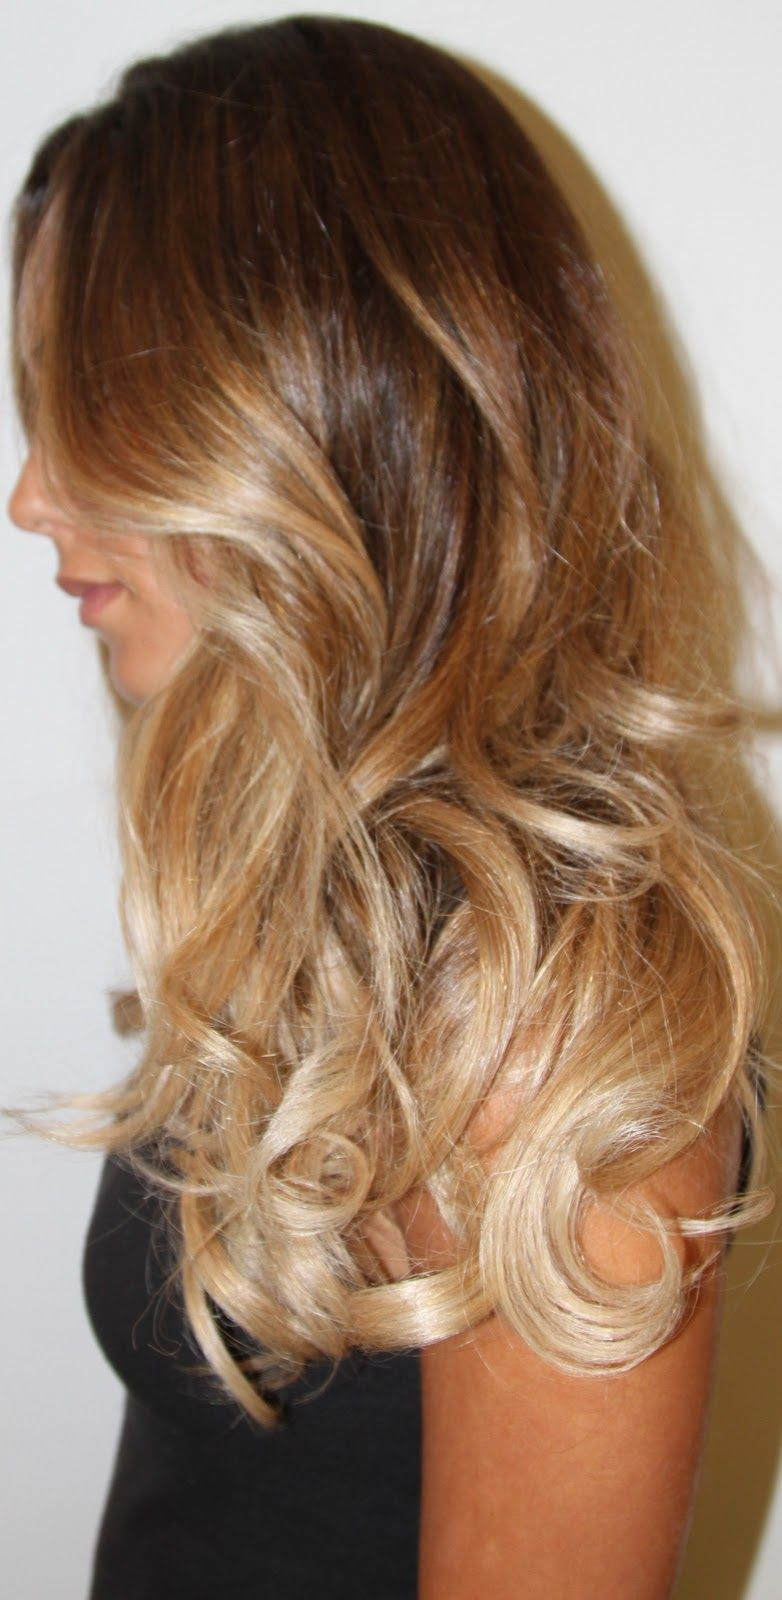 Blond ombre Peinados Pinterest Blond Ombre and Shorts